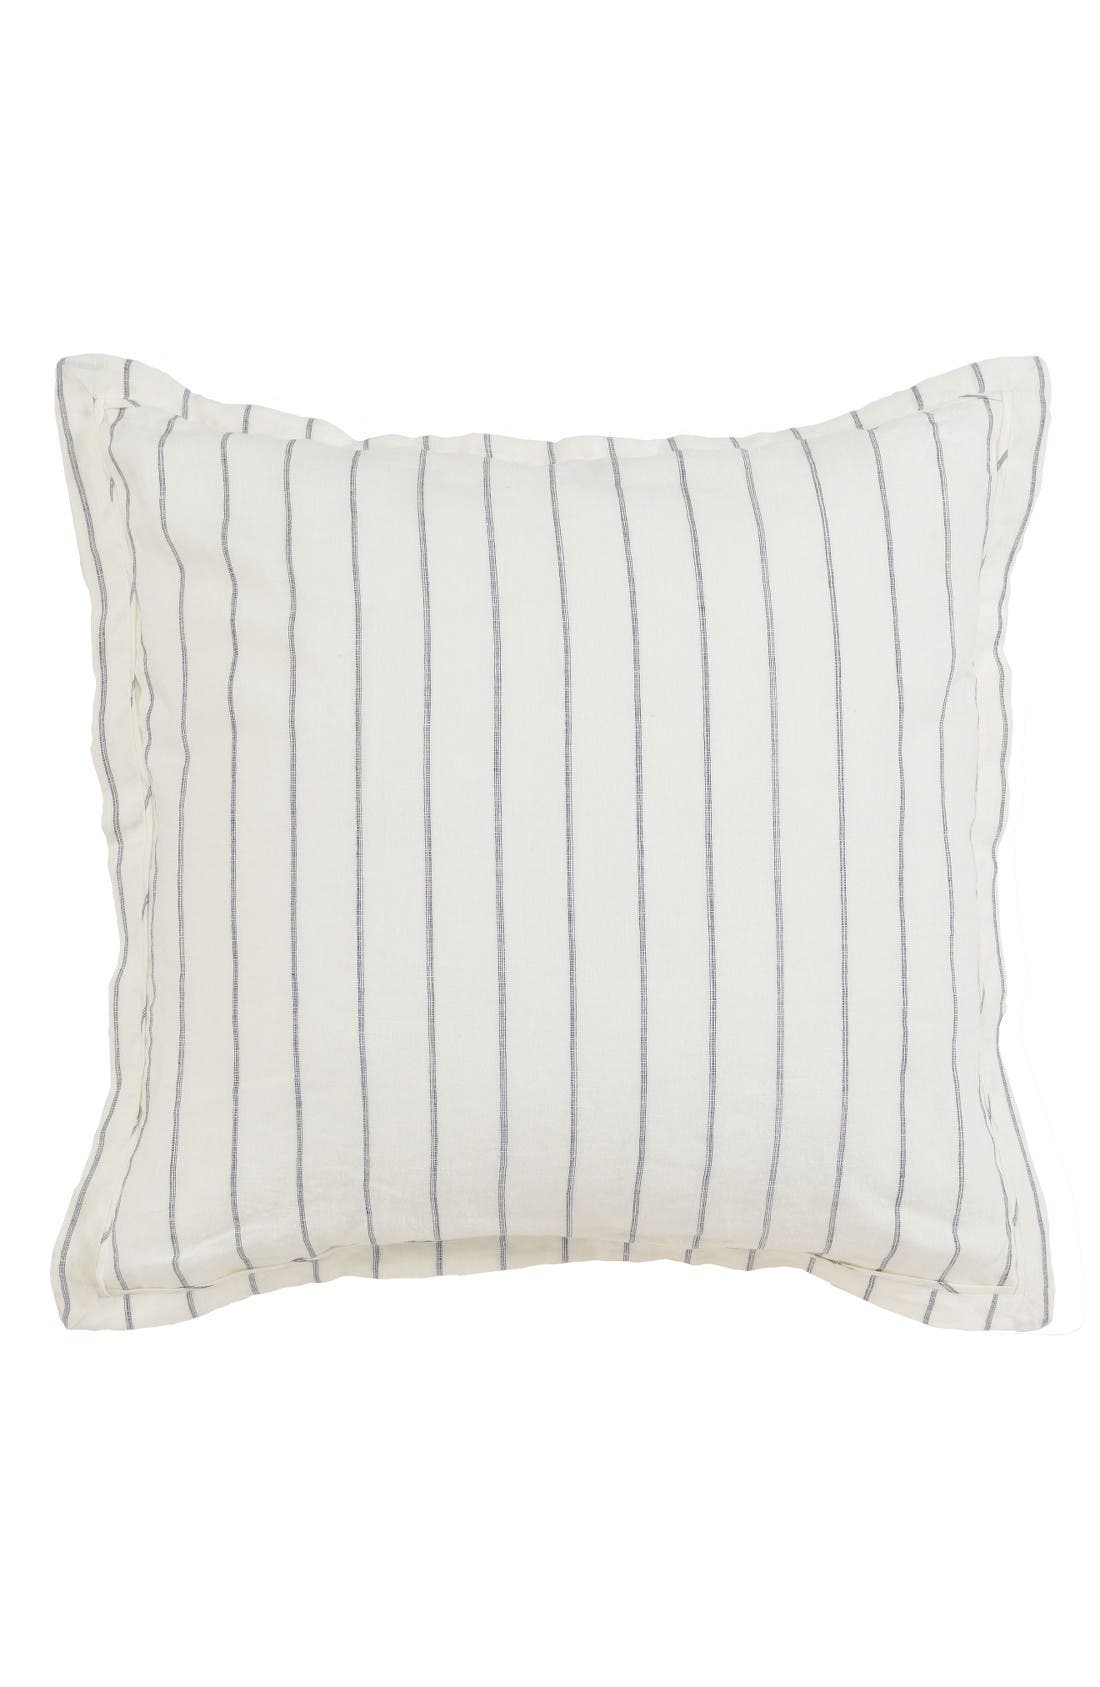 Pinstripe Euro Sham,                         Main,                         color, Ivory/ Charcoal